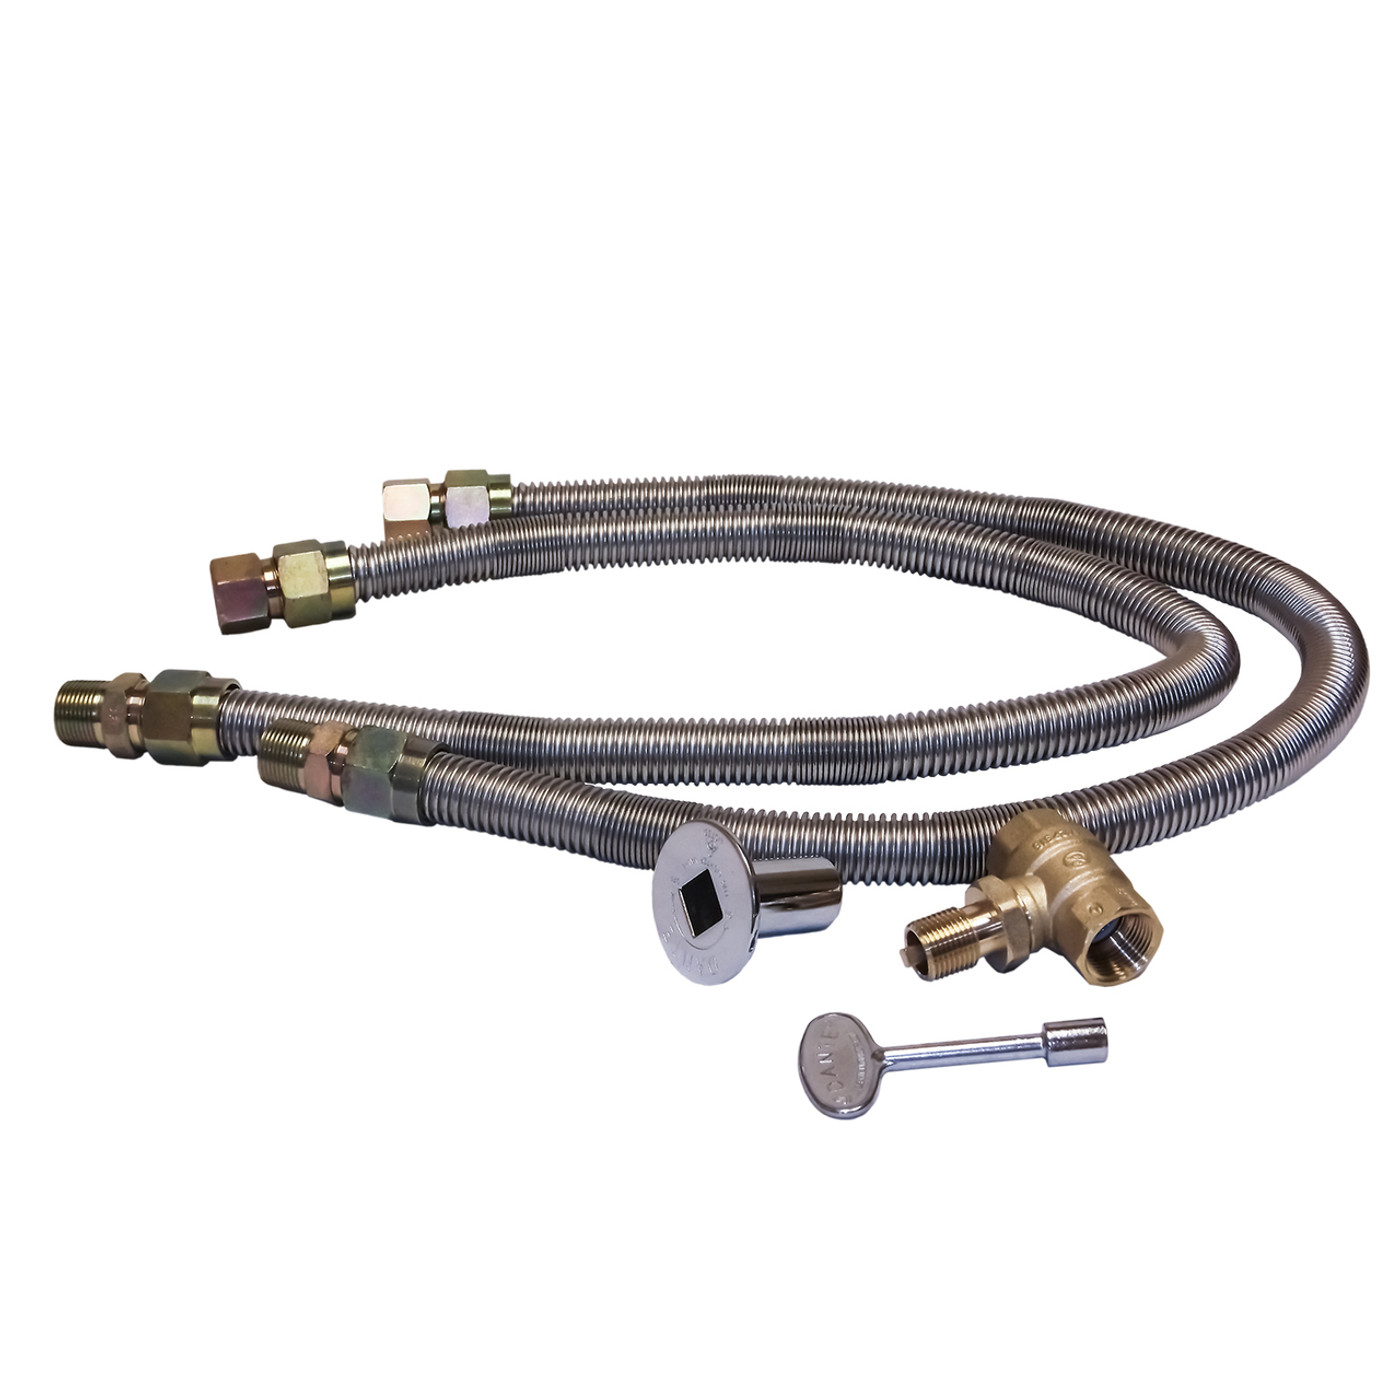 DFLKV34 Flex Line Kit for 250K BTU Burner